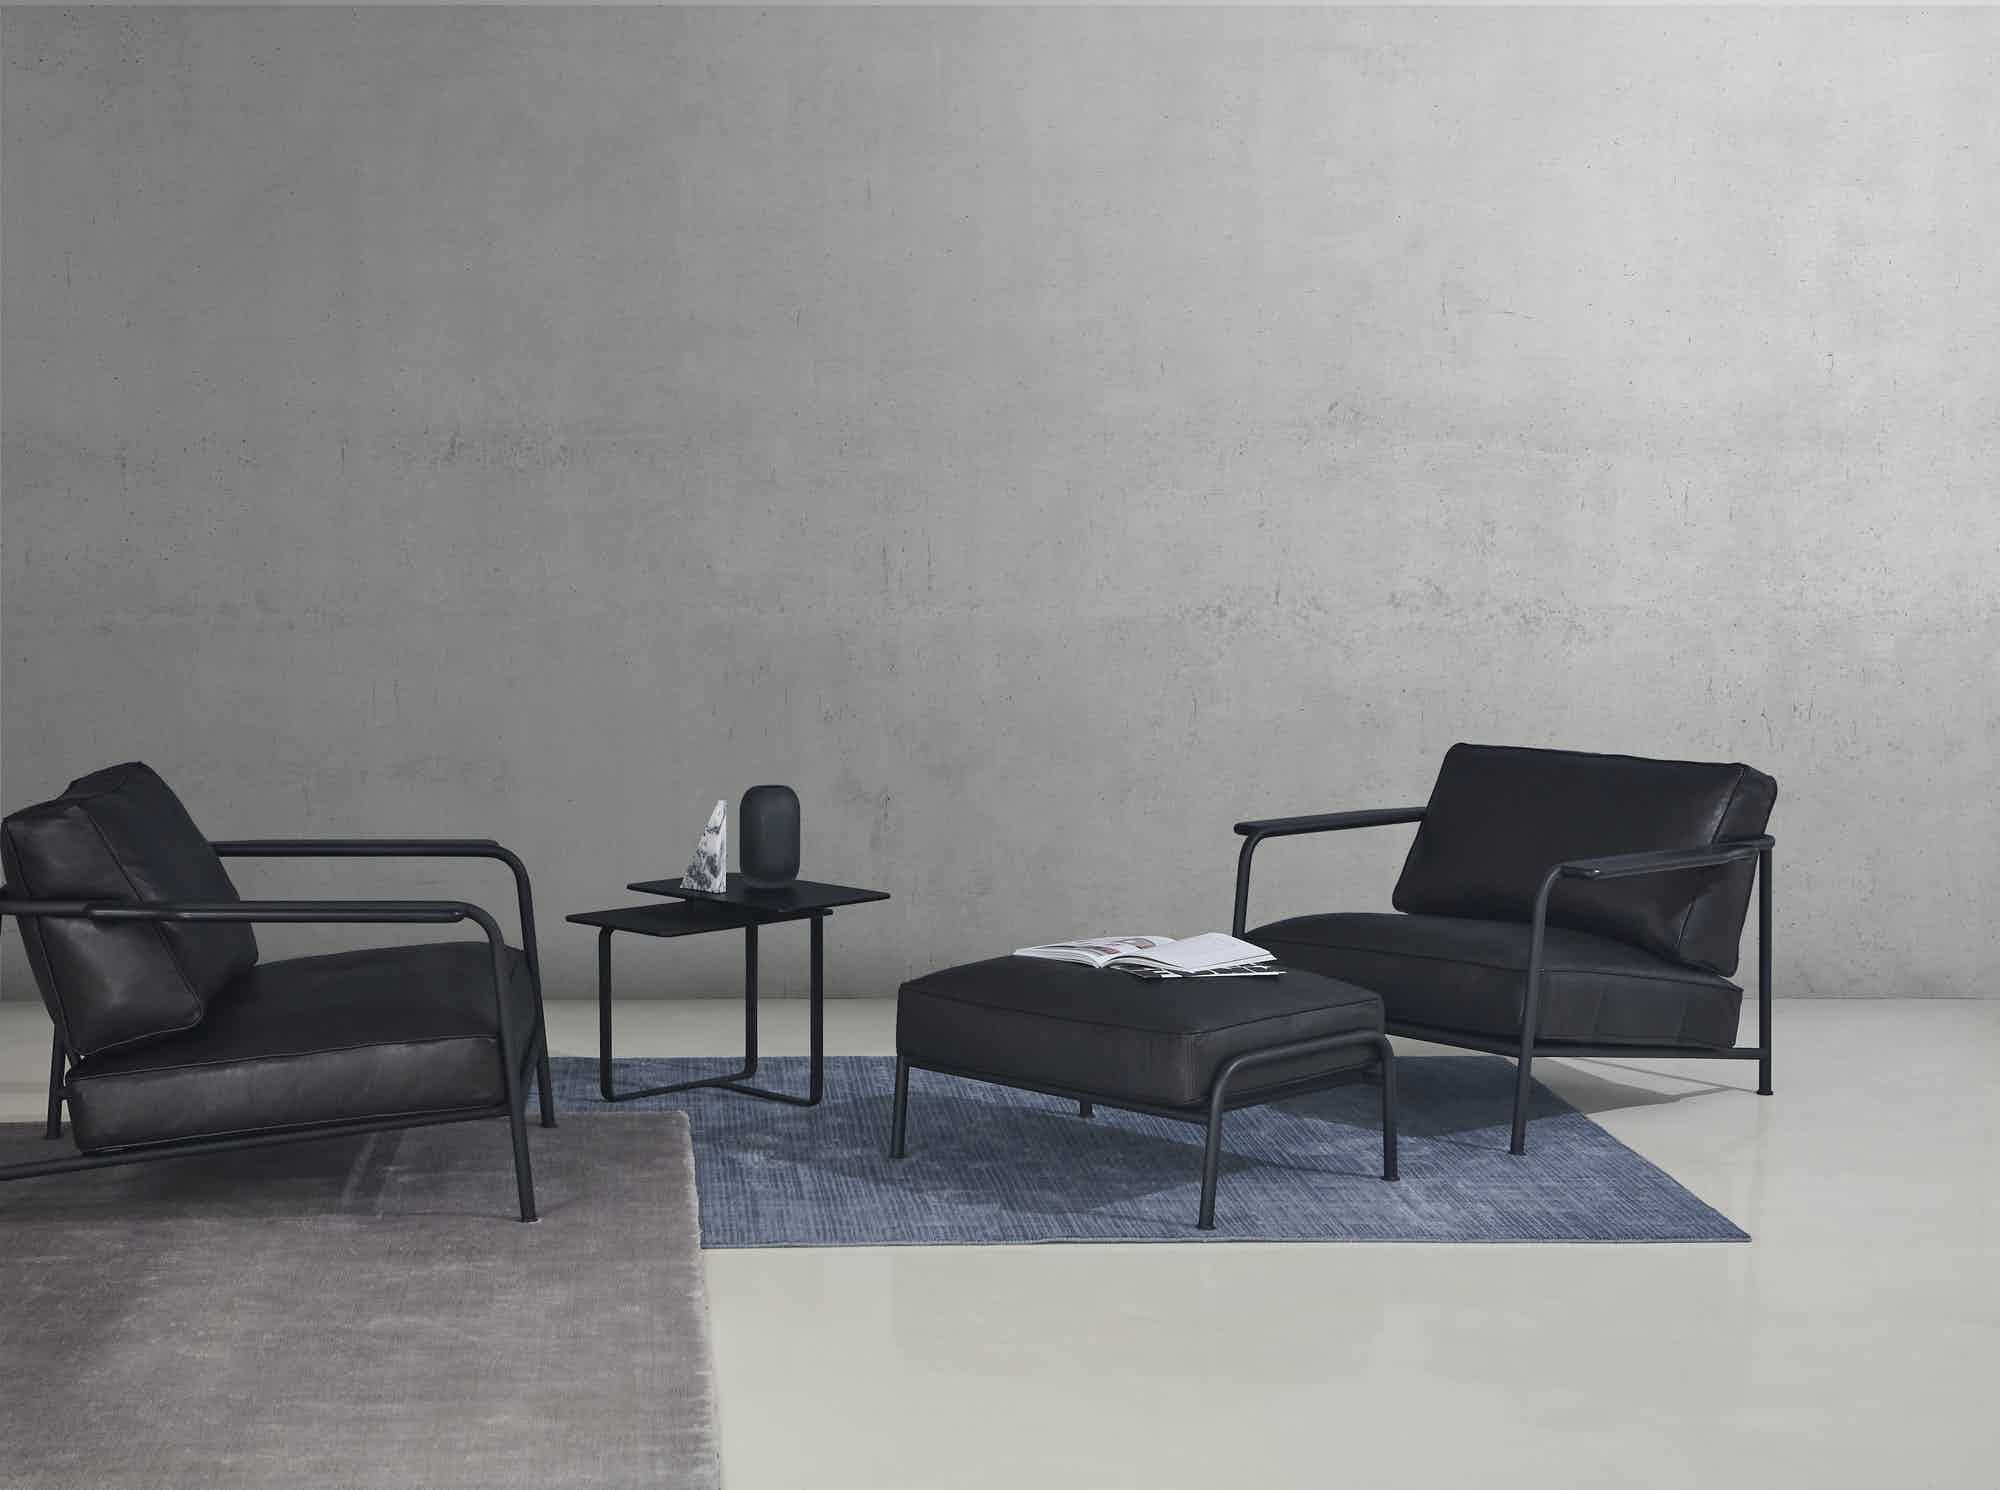 Wendelbo-aero-chair-insitu-black-haute-living